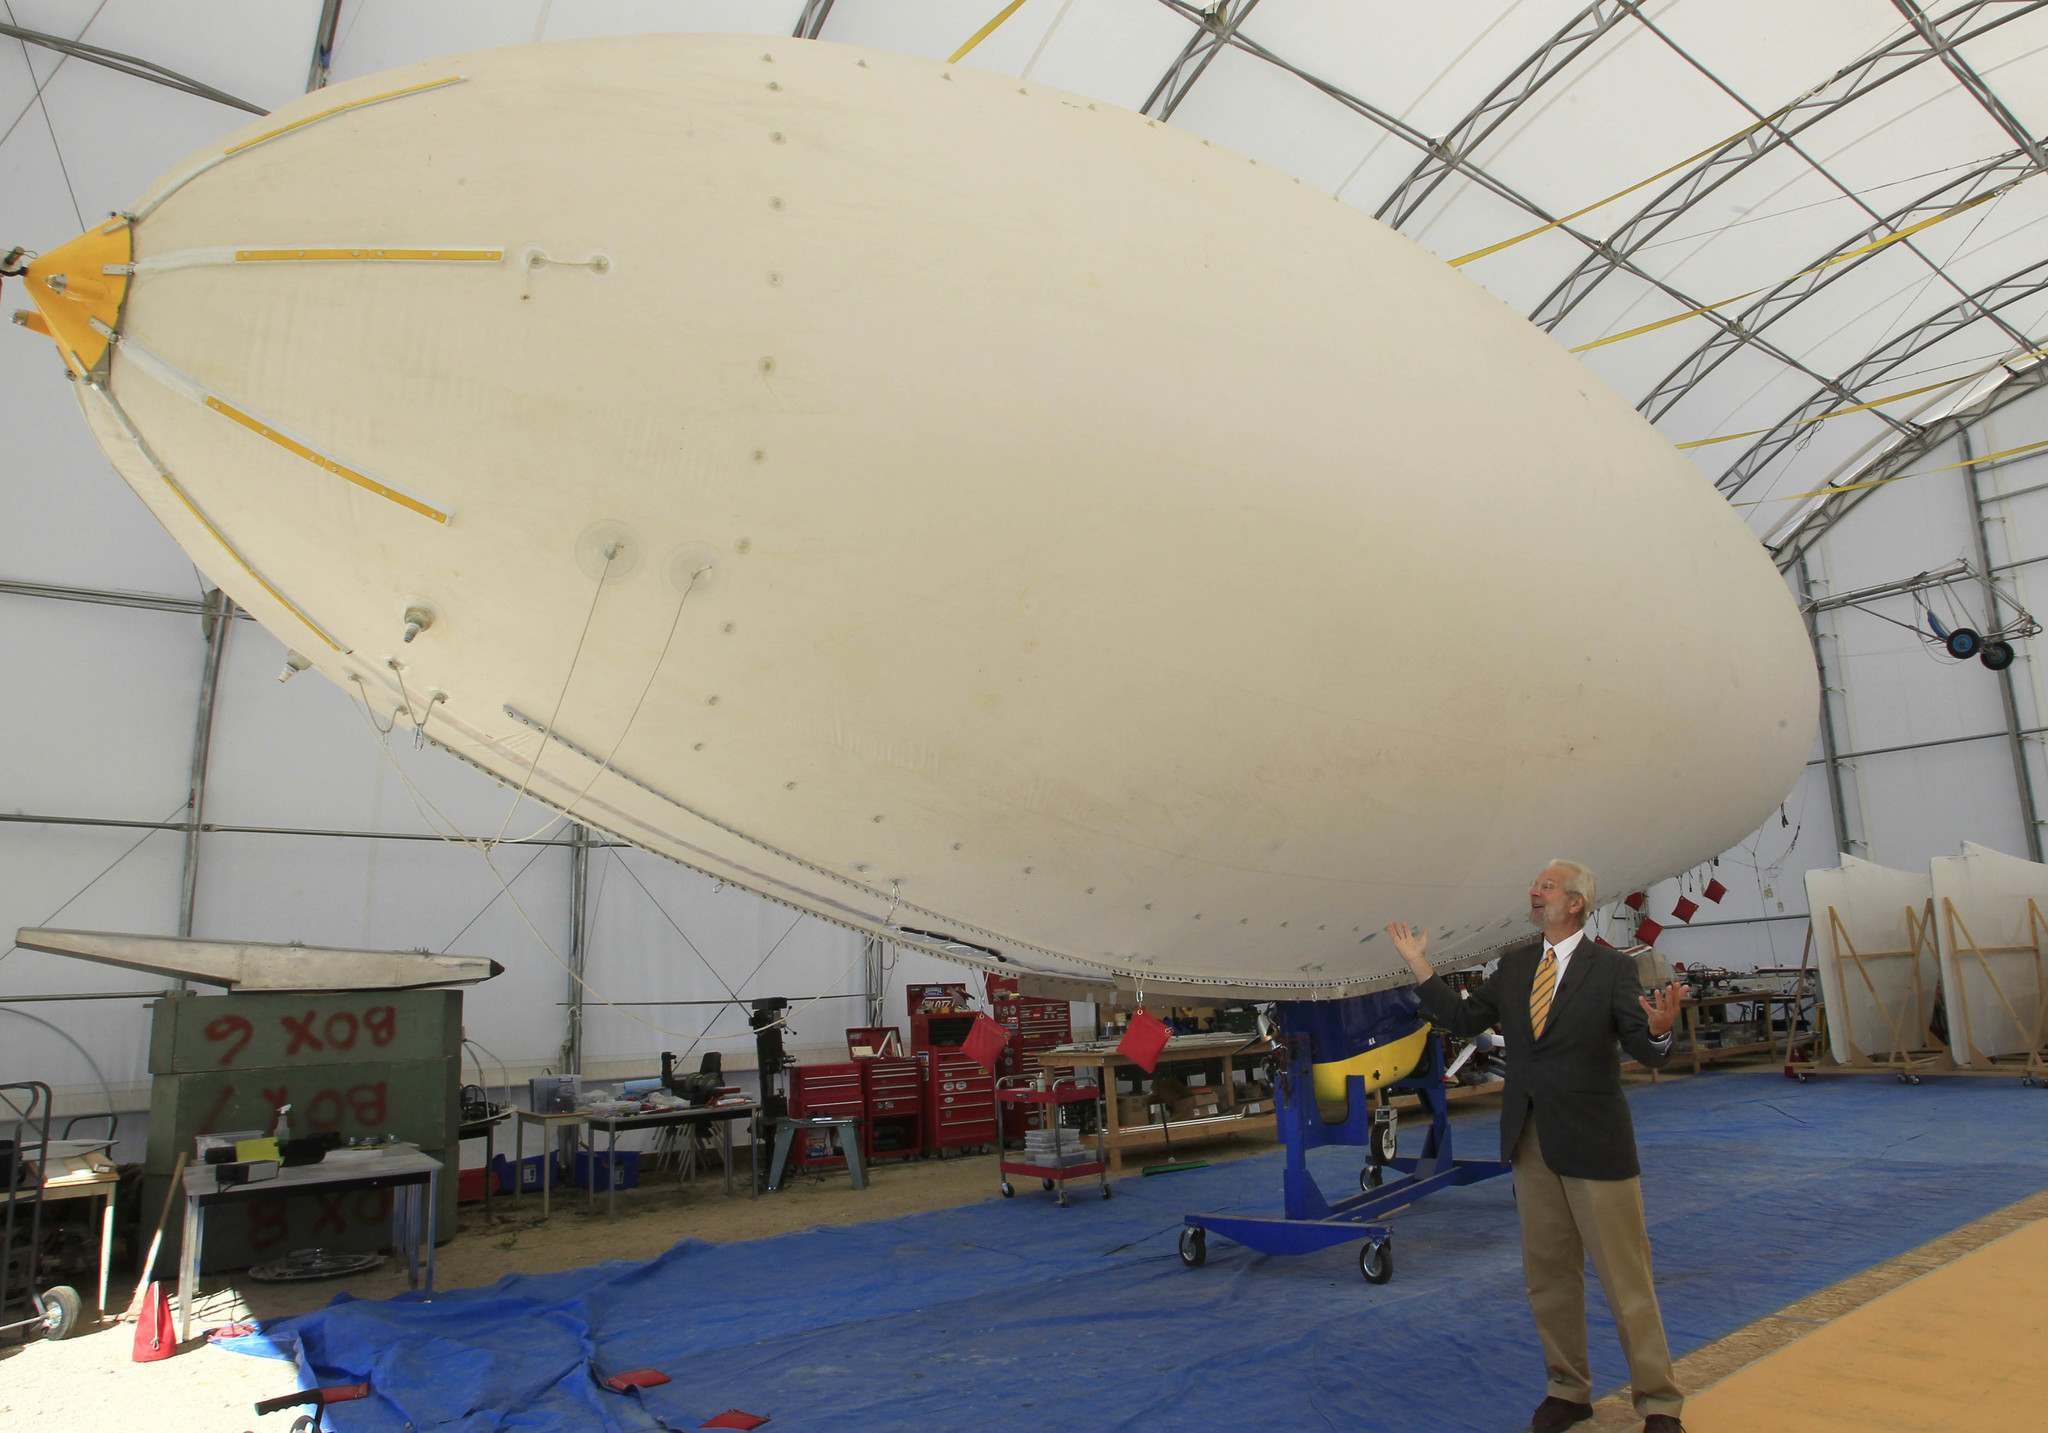 Wayne Glowacki / Winnipeg Free Press files</p><p>Barry Prentice stands in front of an airship at the St. Andrews Airport in 2013.</p></p>